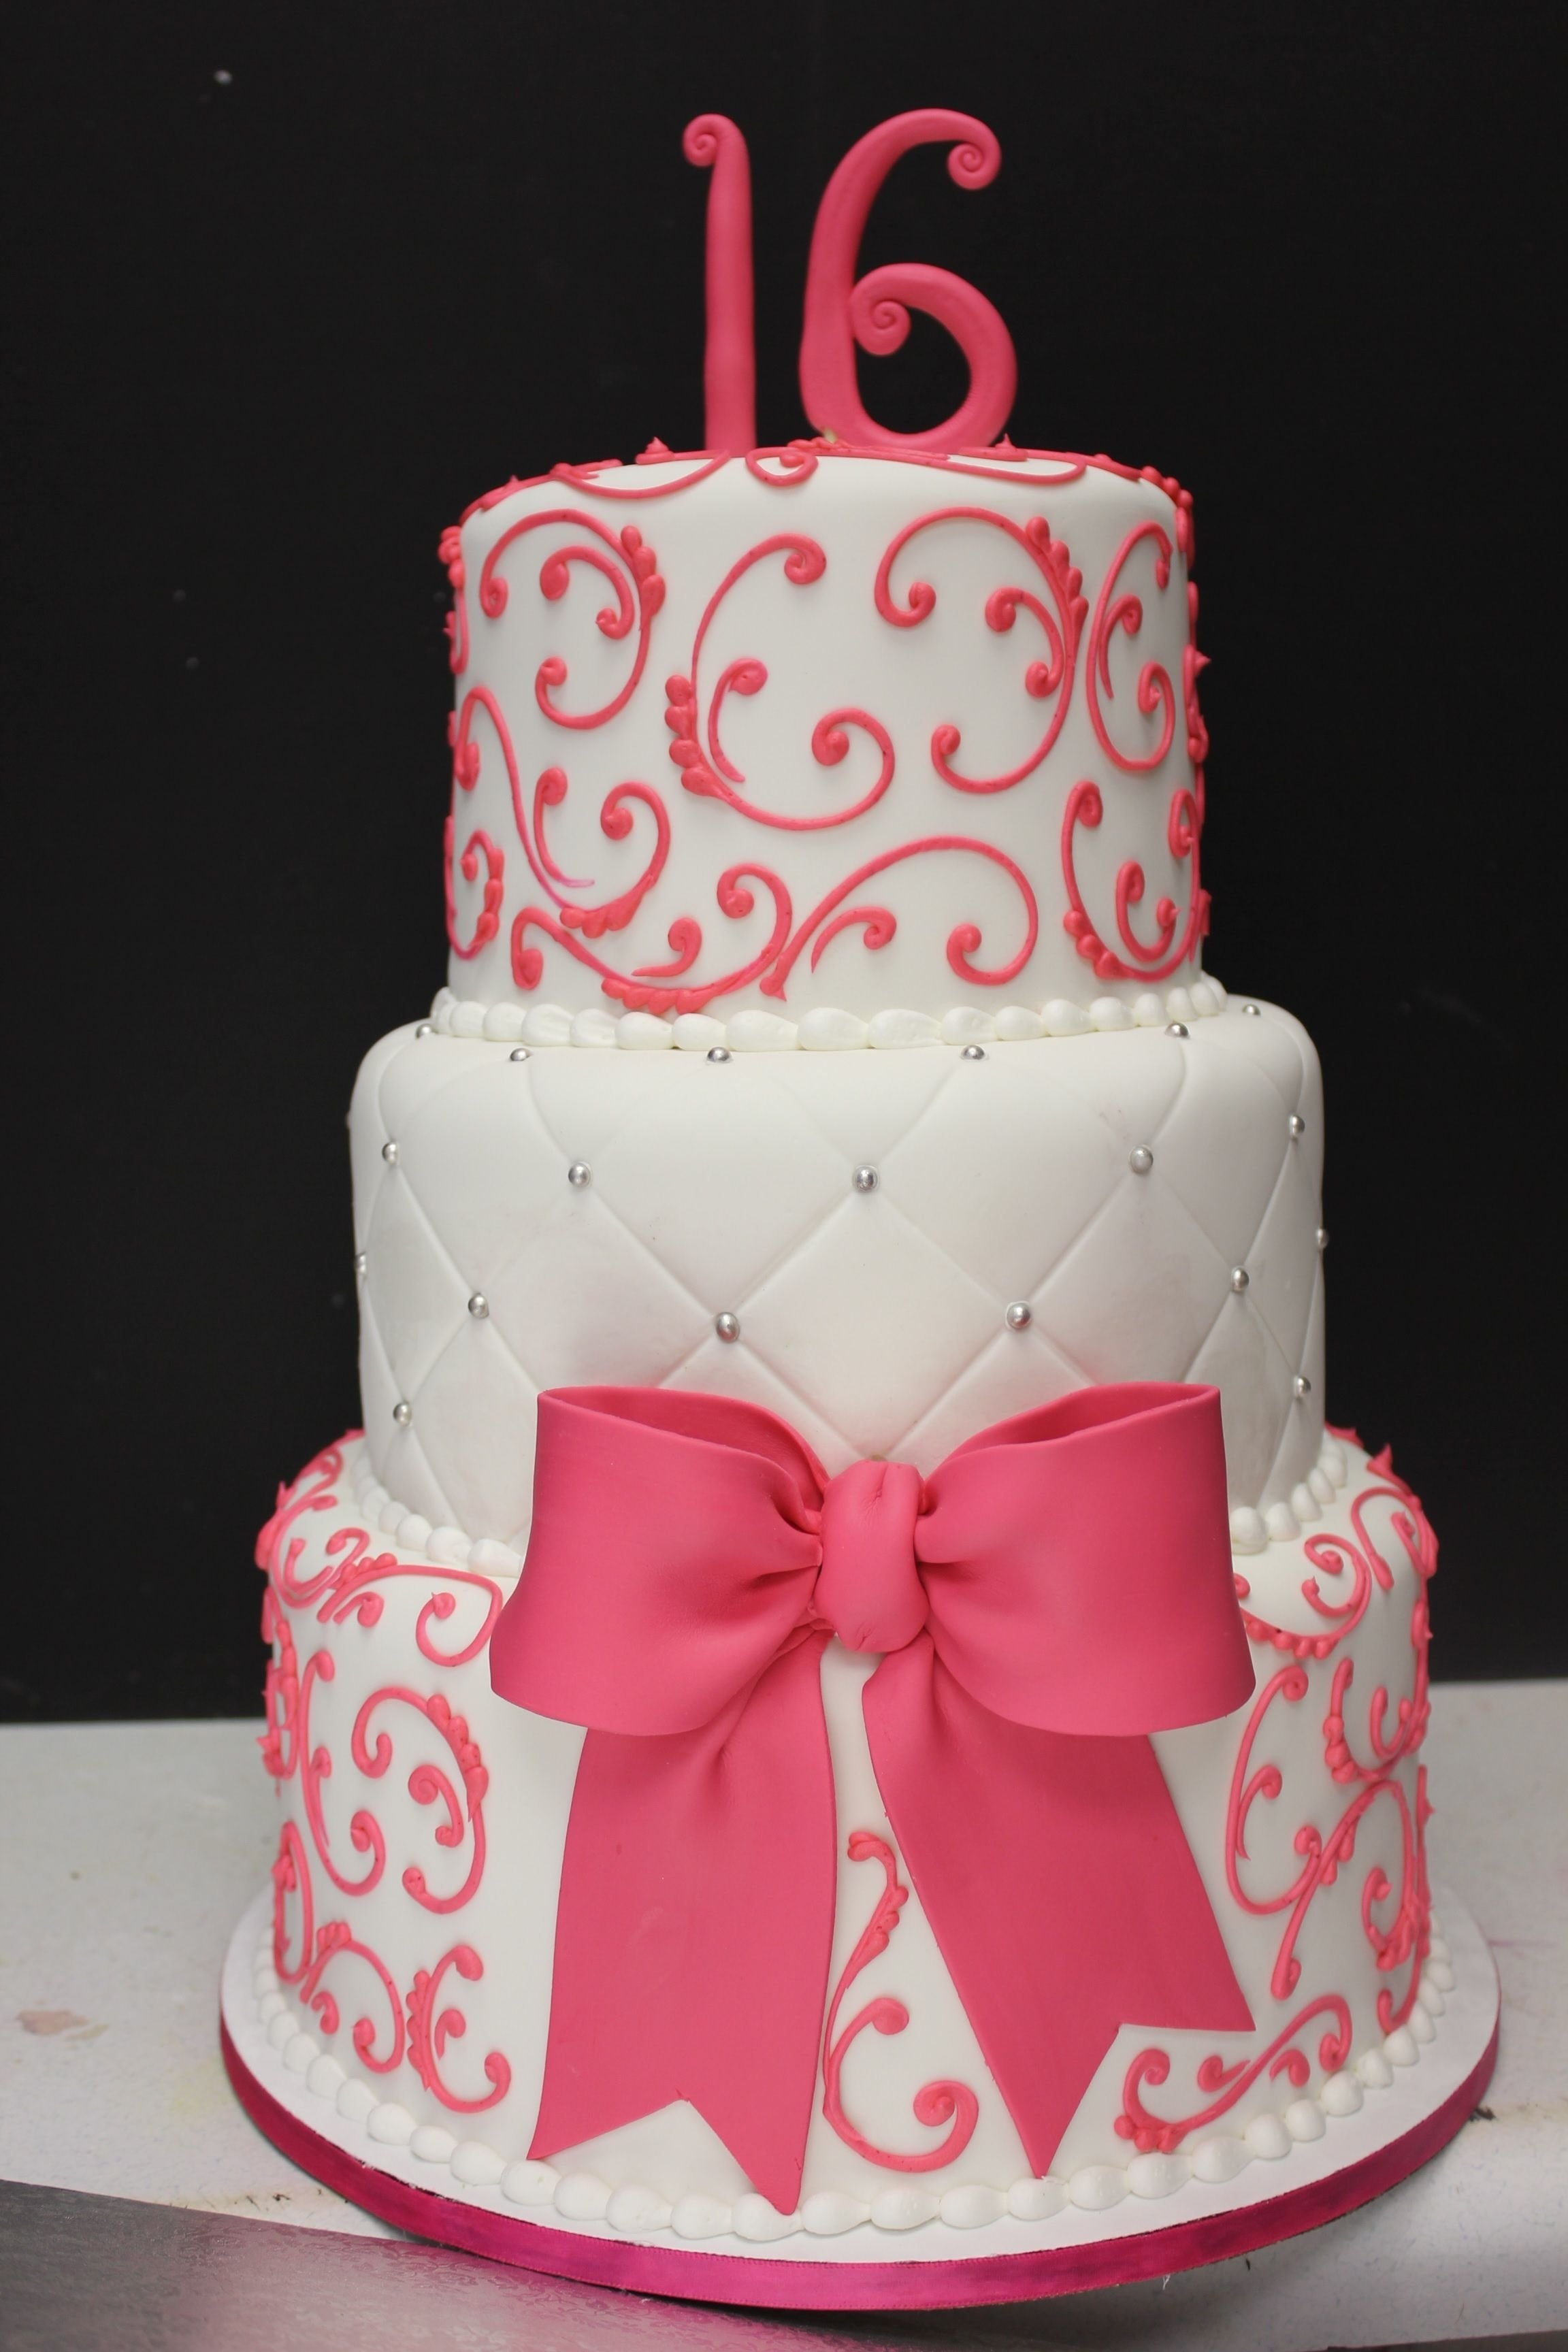 sweet 16 cake, maybe in red and black and gold instead | sweet 16